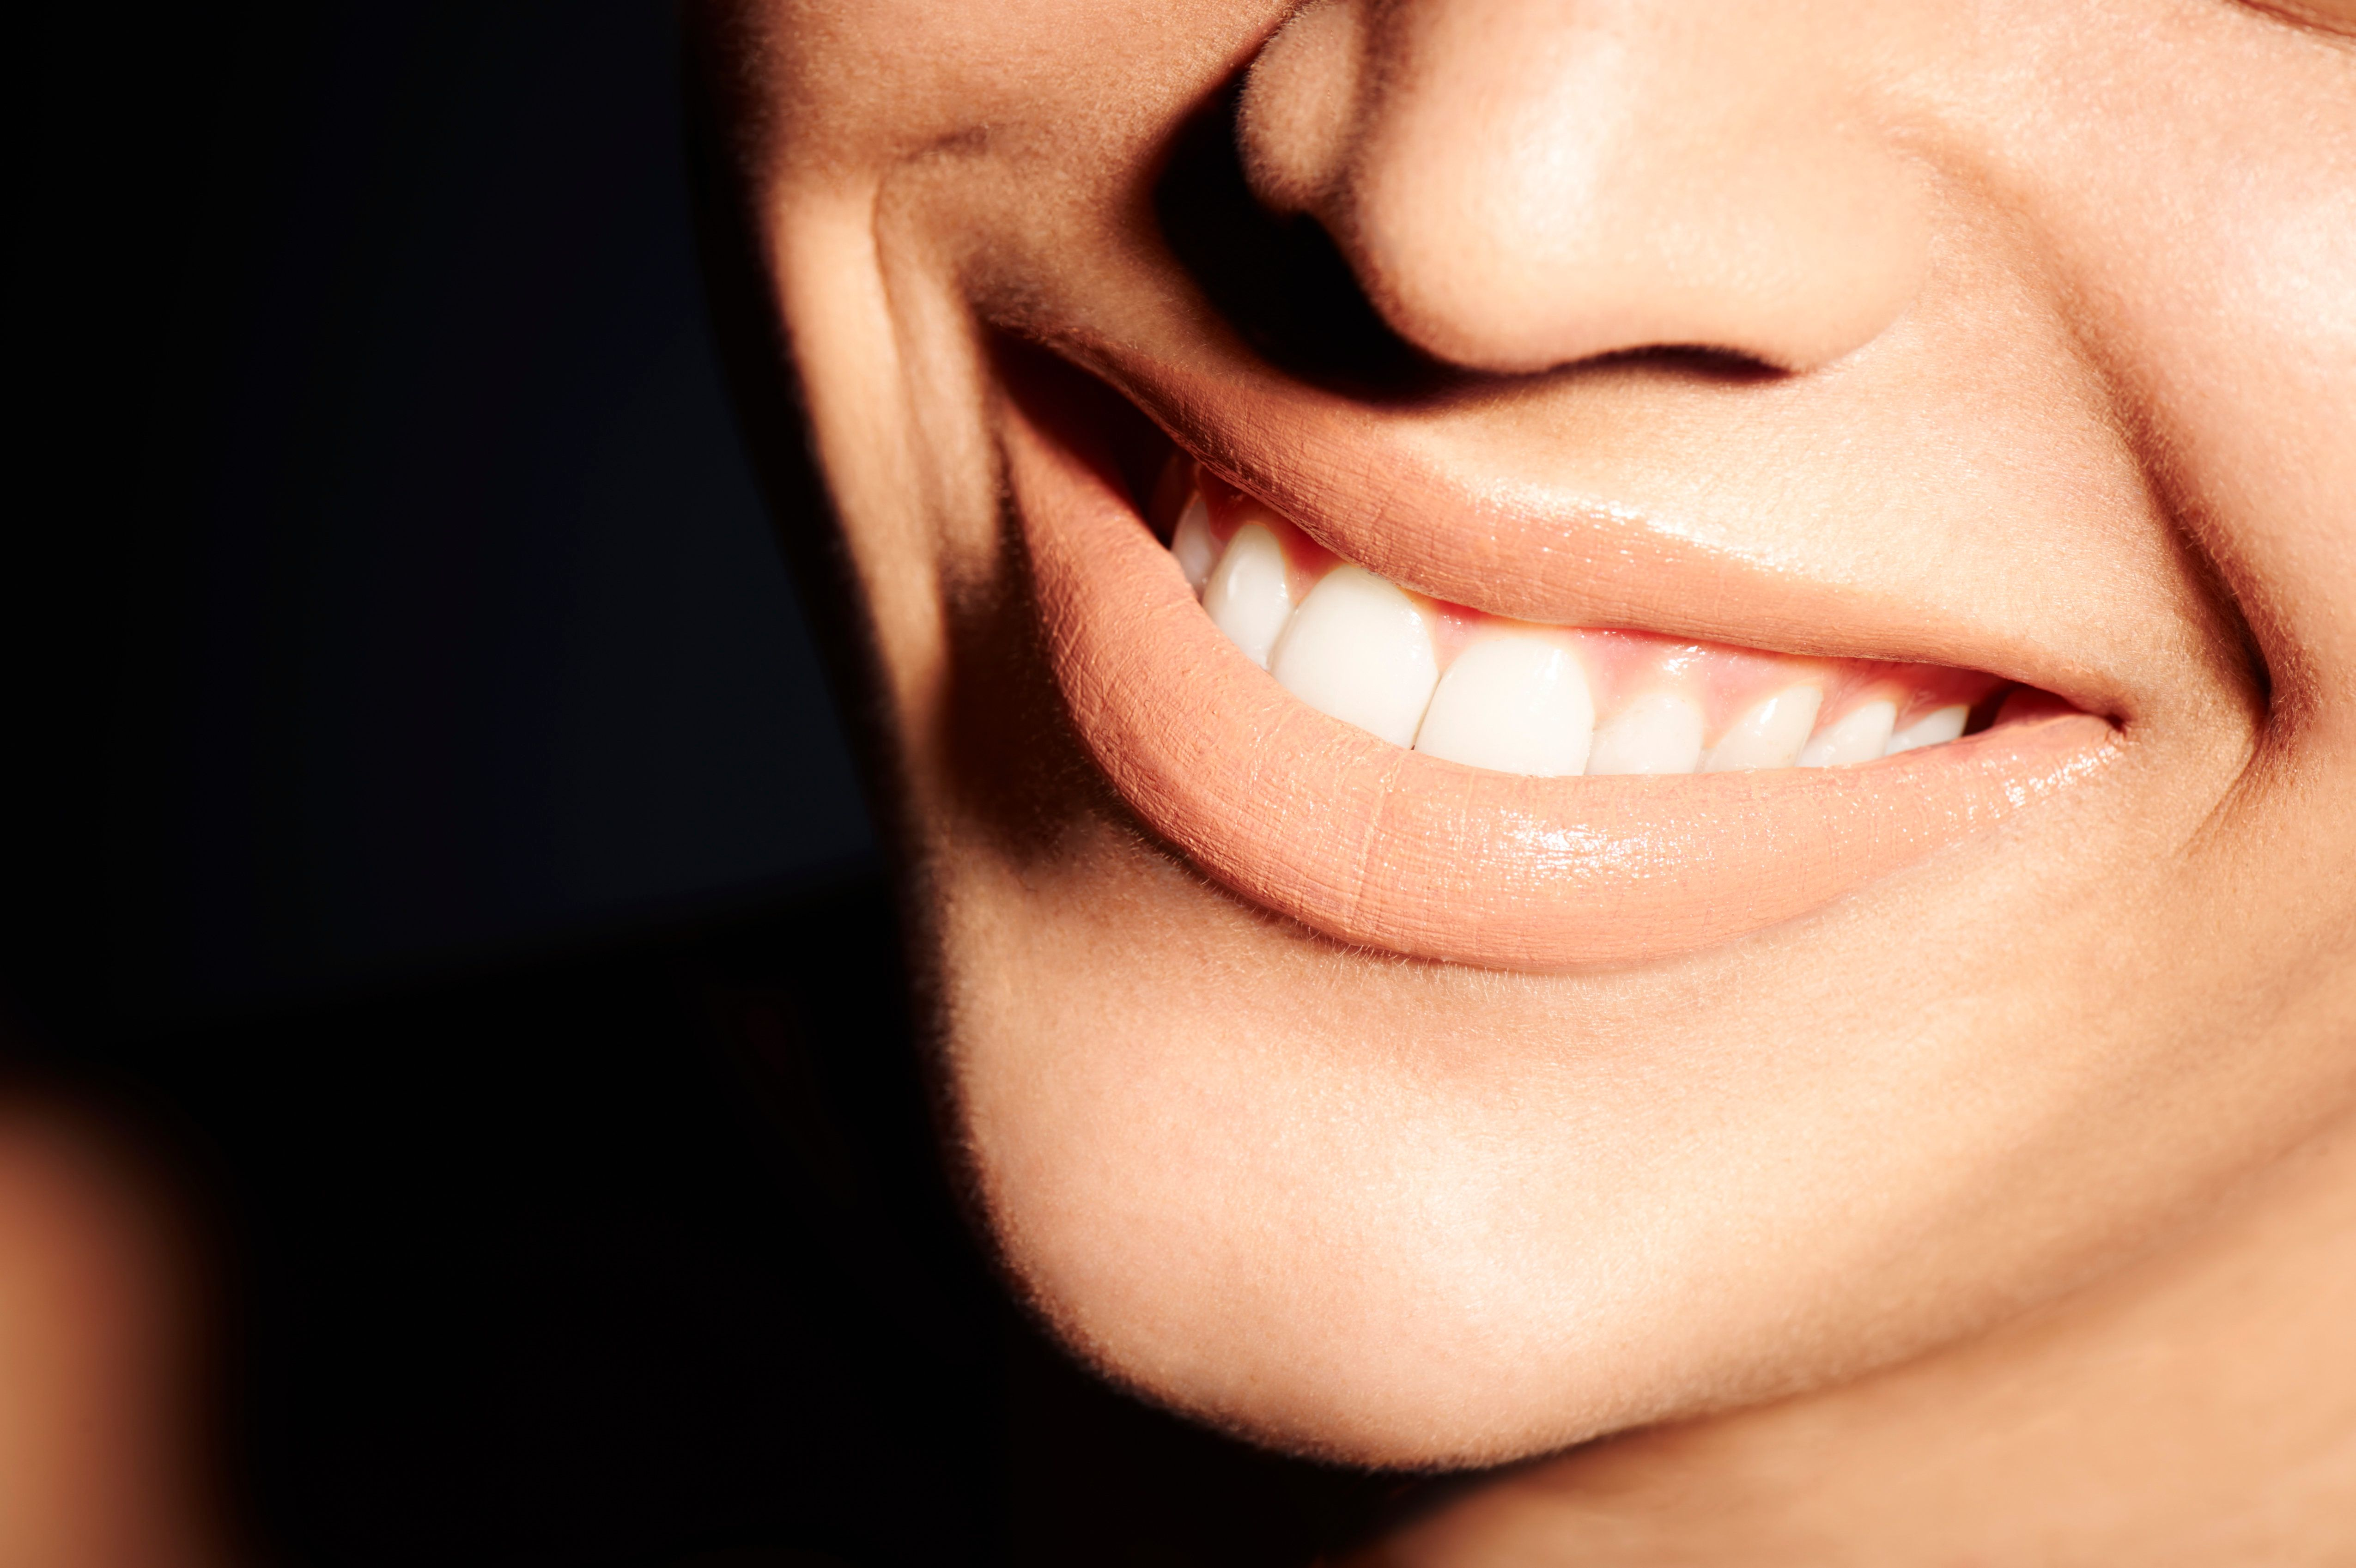 When we smile it can trigger a smile on another person's face, a new study explains.